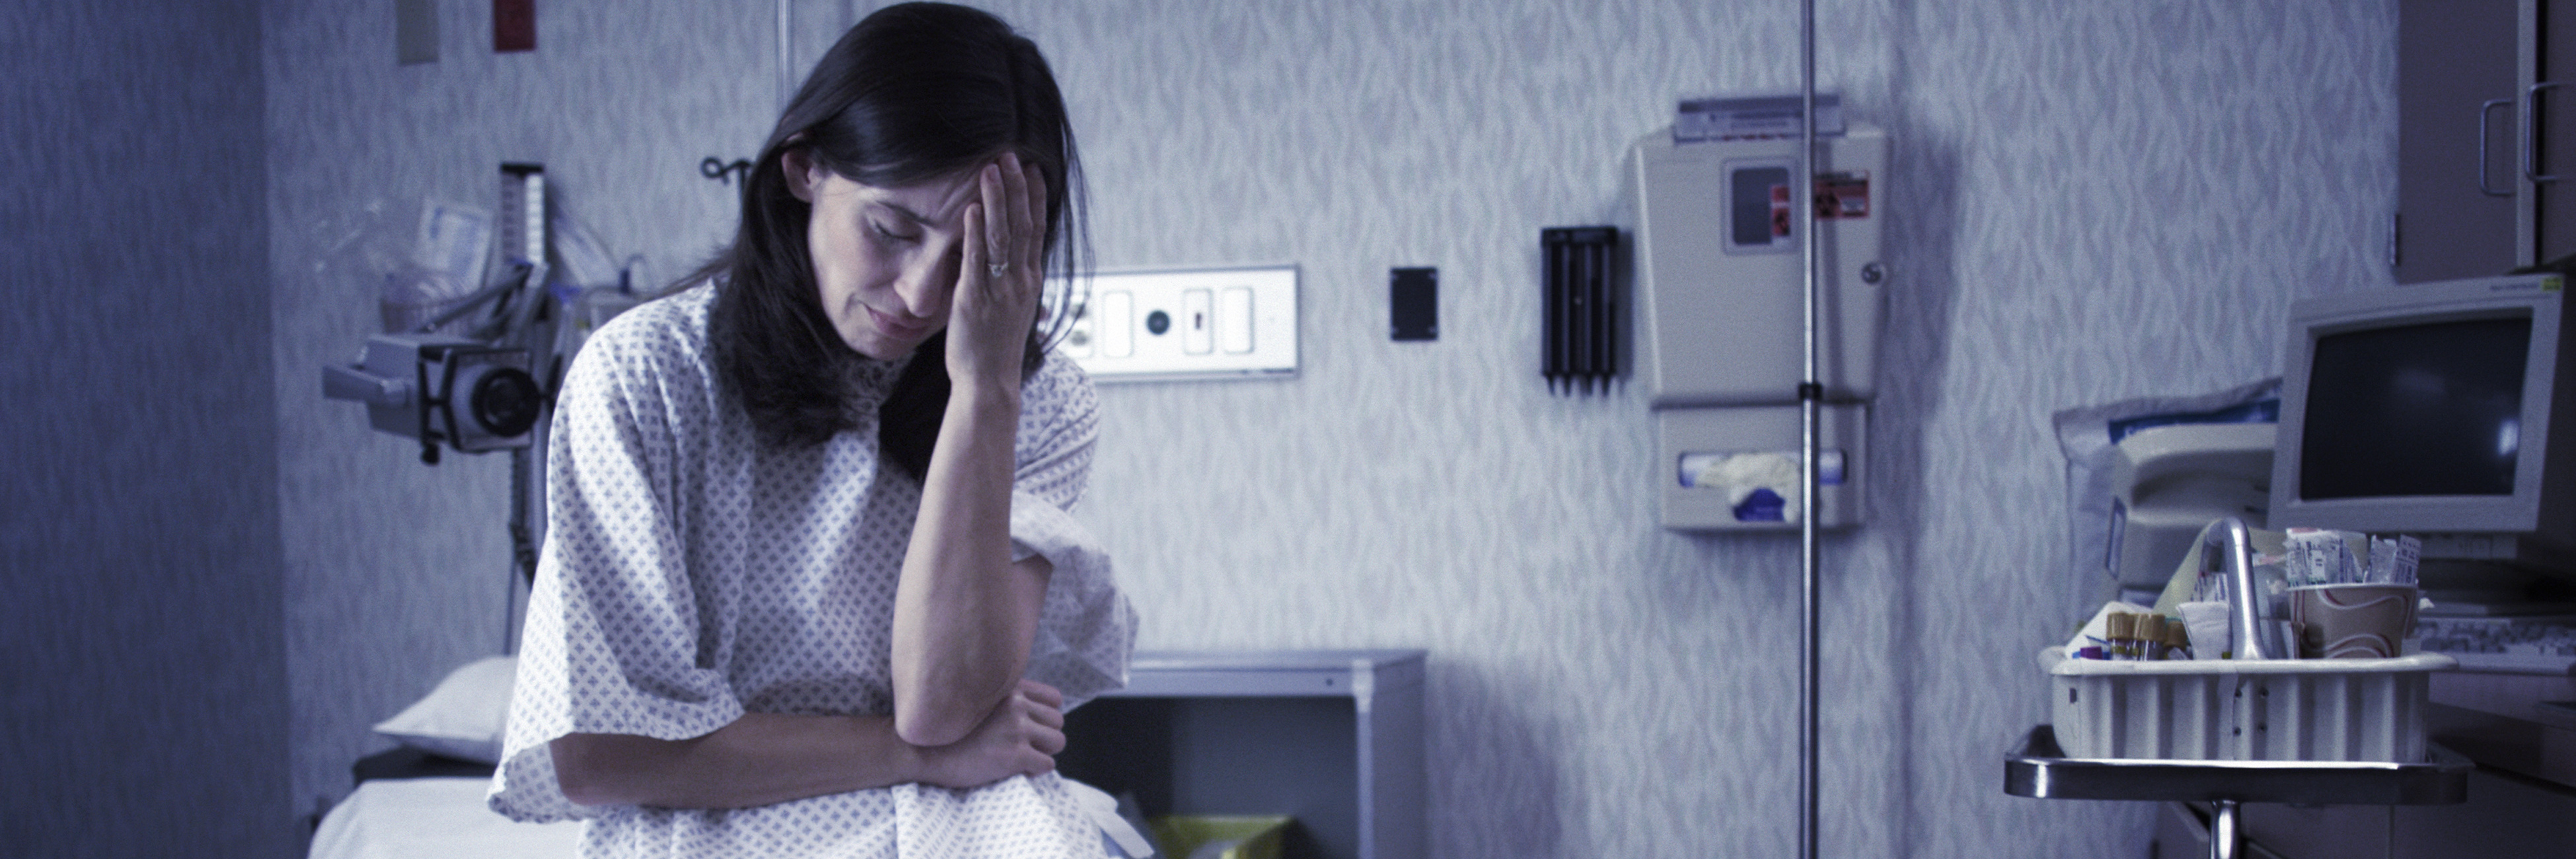 A worried patient sits in a hospital gown in a hospital room.